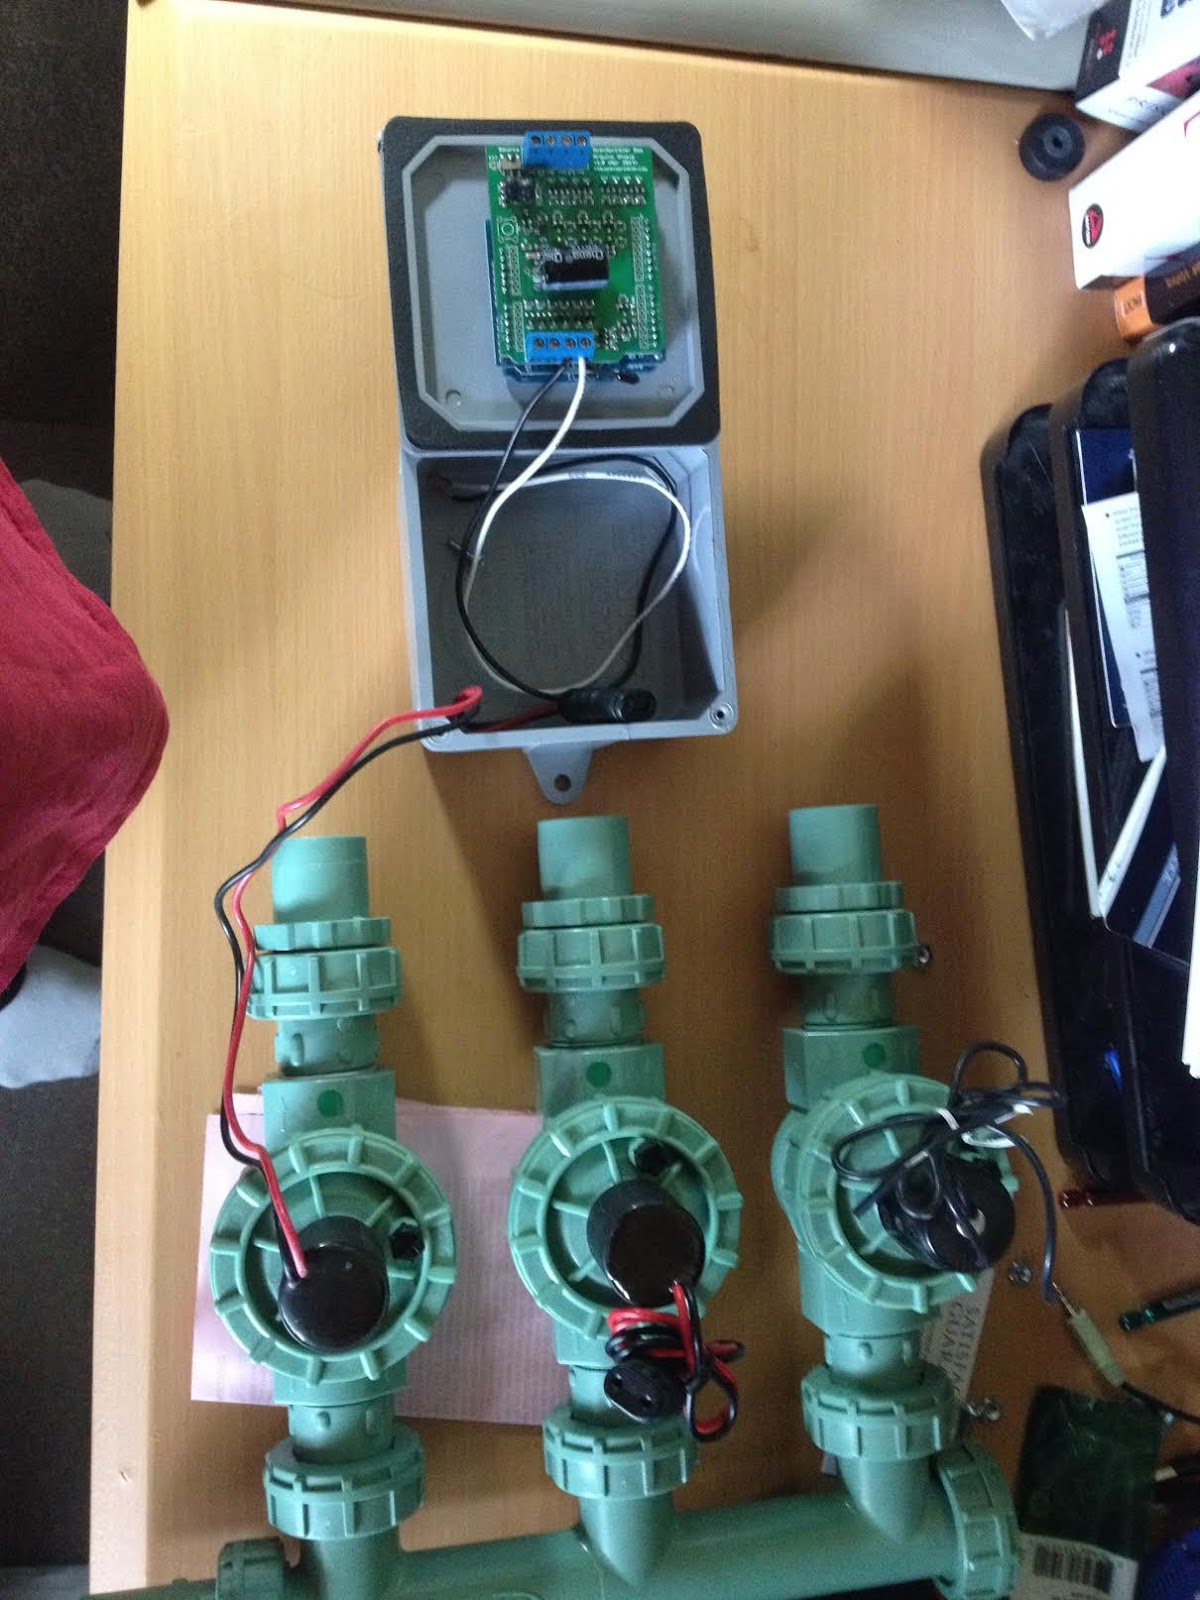 Desert Home Arduino Controlled Sprinklers and A Guest Speaker